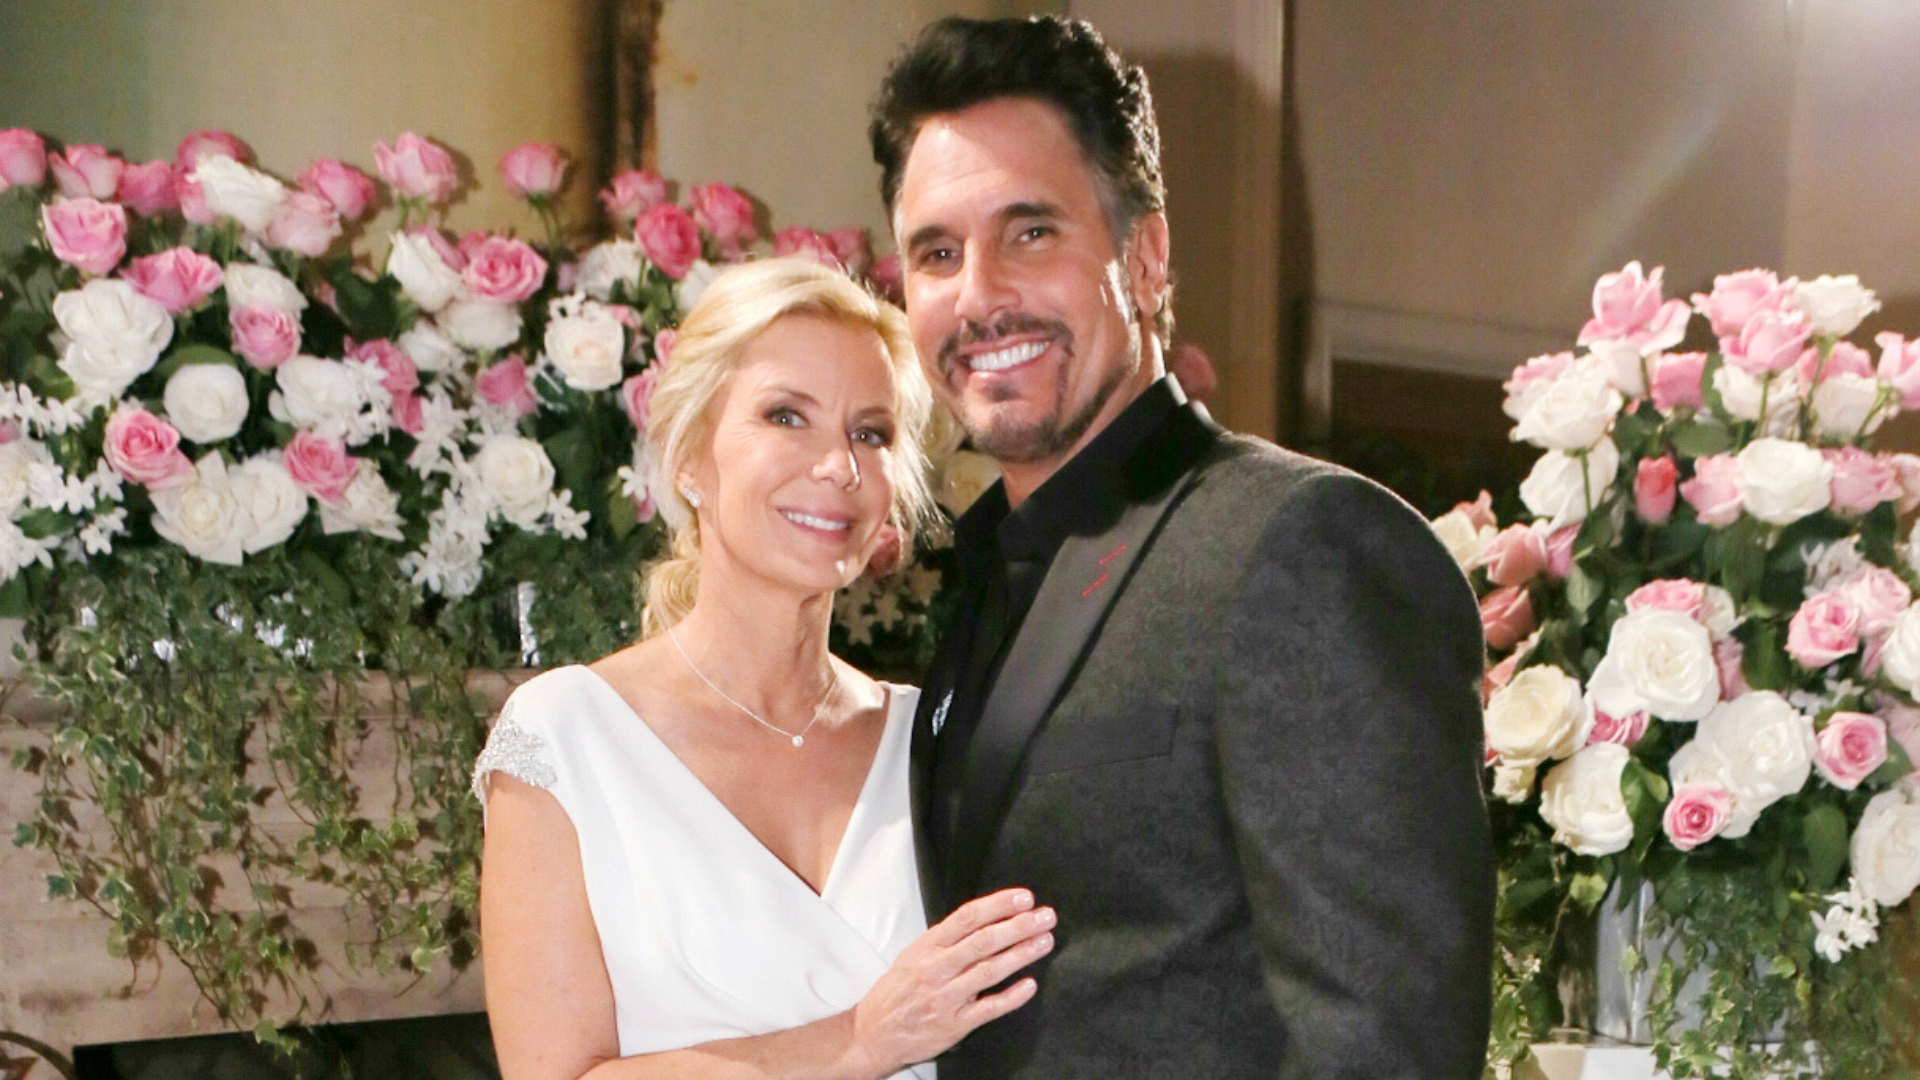 Brooke and Bill's second attempt at a marriage in 2016 was thwarted by Ridge. Again.